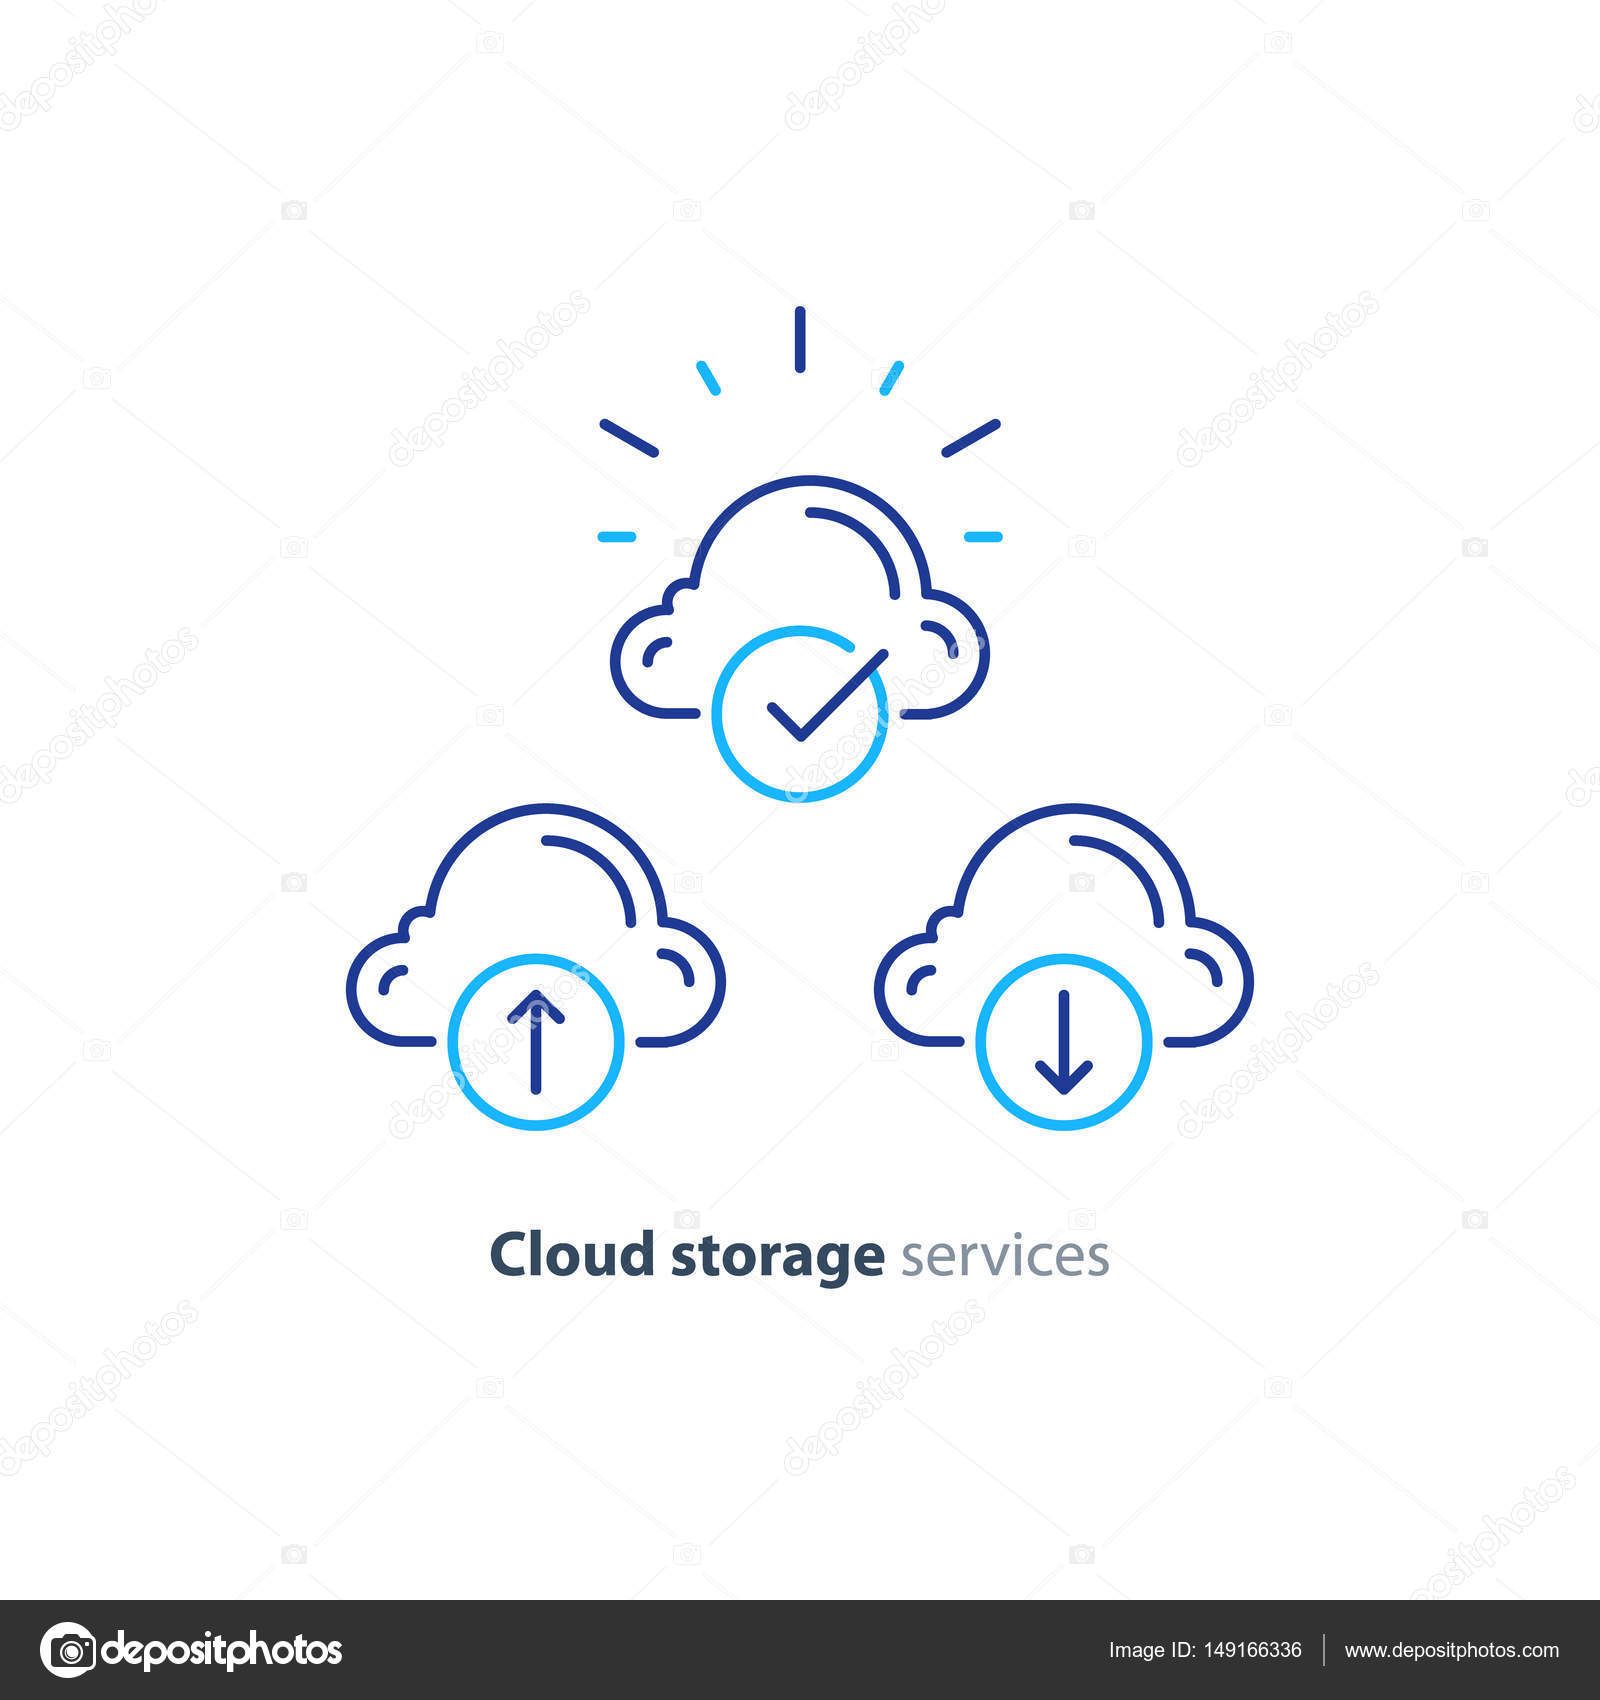 Cloud Storage Services Concept Vector Mono Line Icon By Stmool